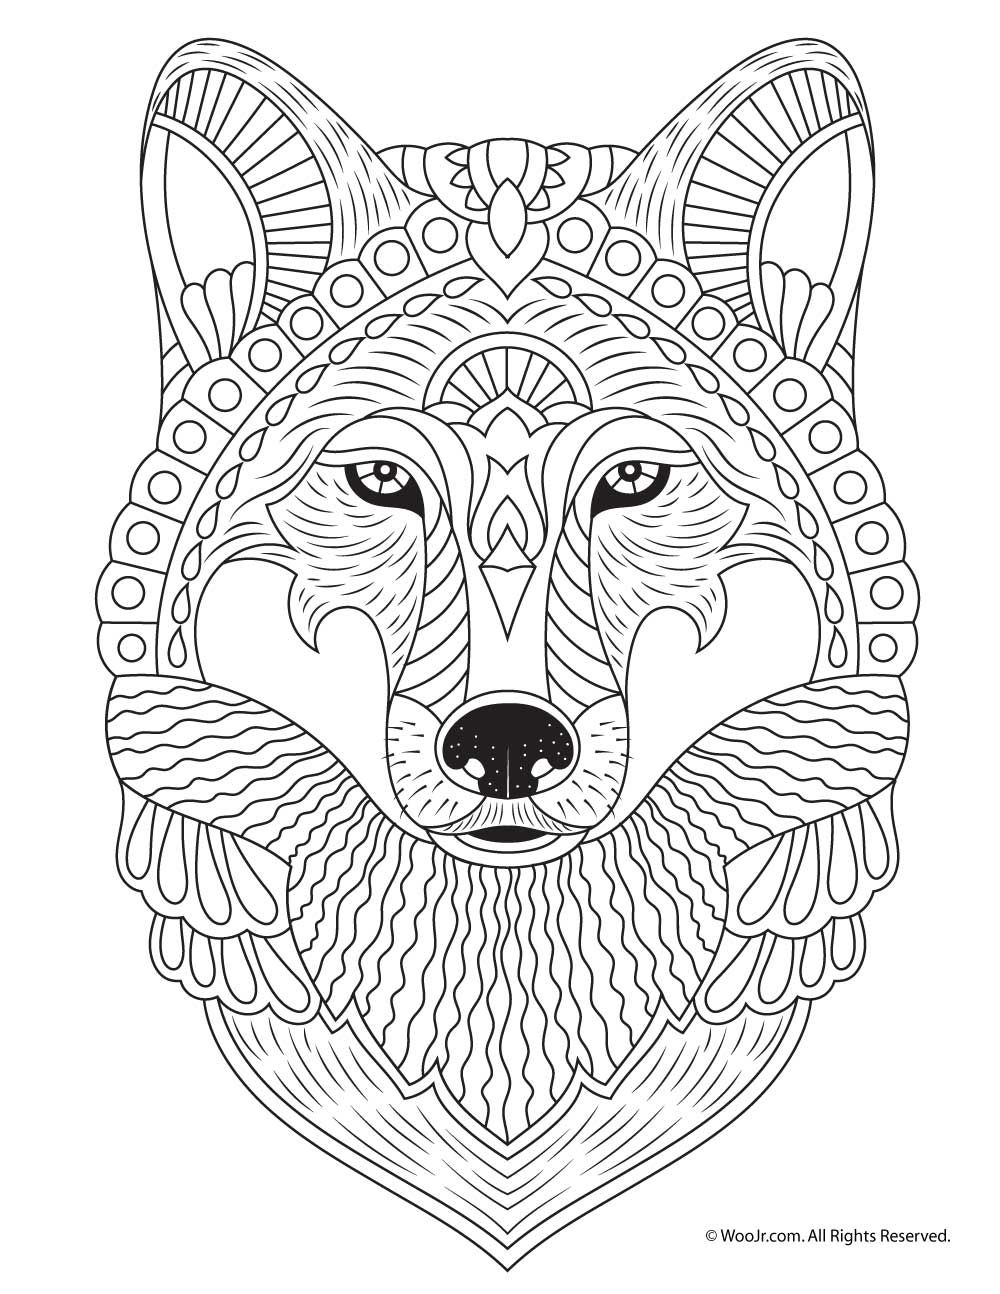 wolf coloring pages for adults print wolf for adult coloring pages animal coloring coloring adults wolf for pages